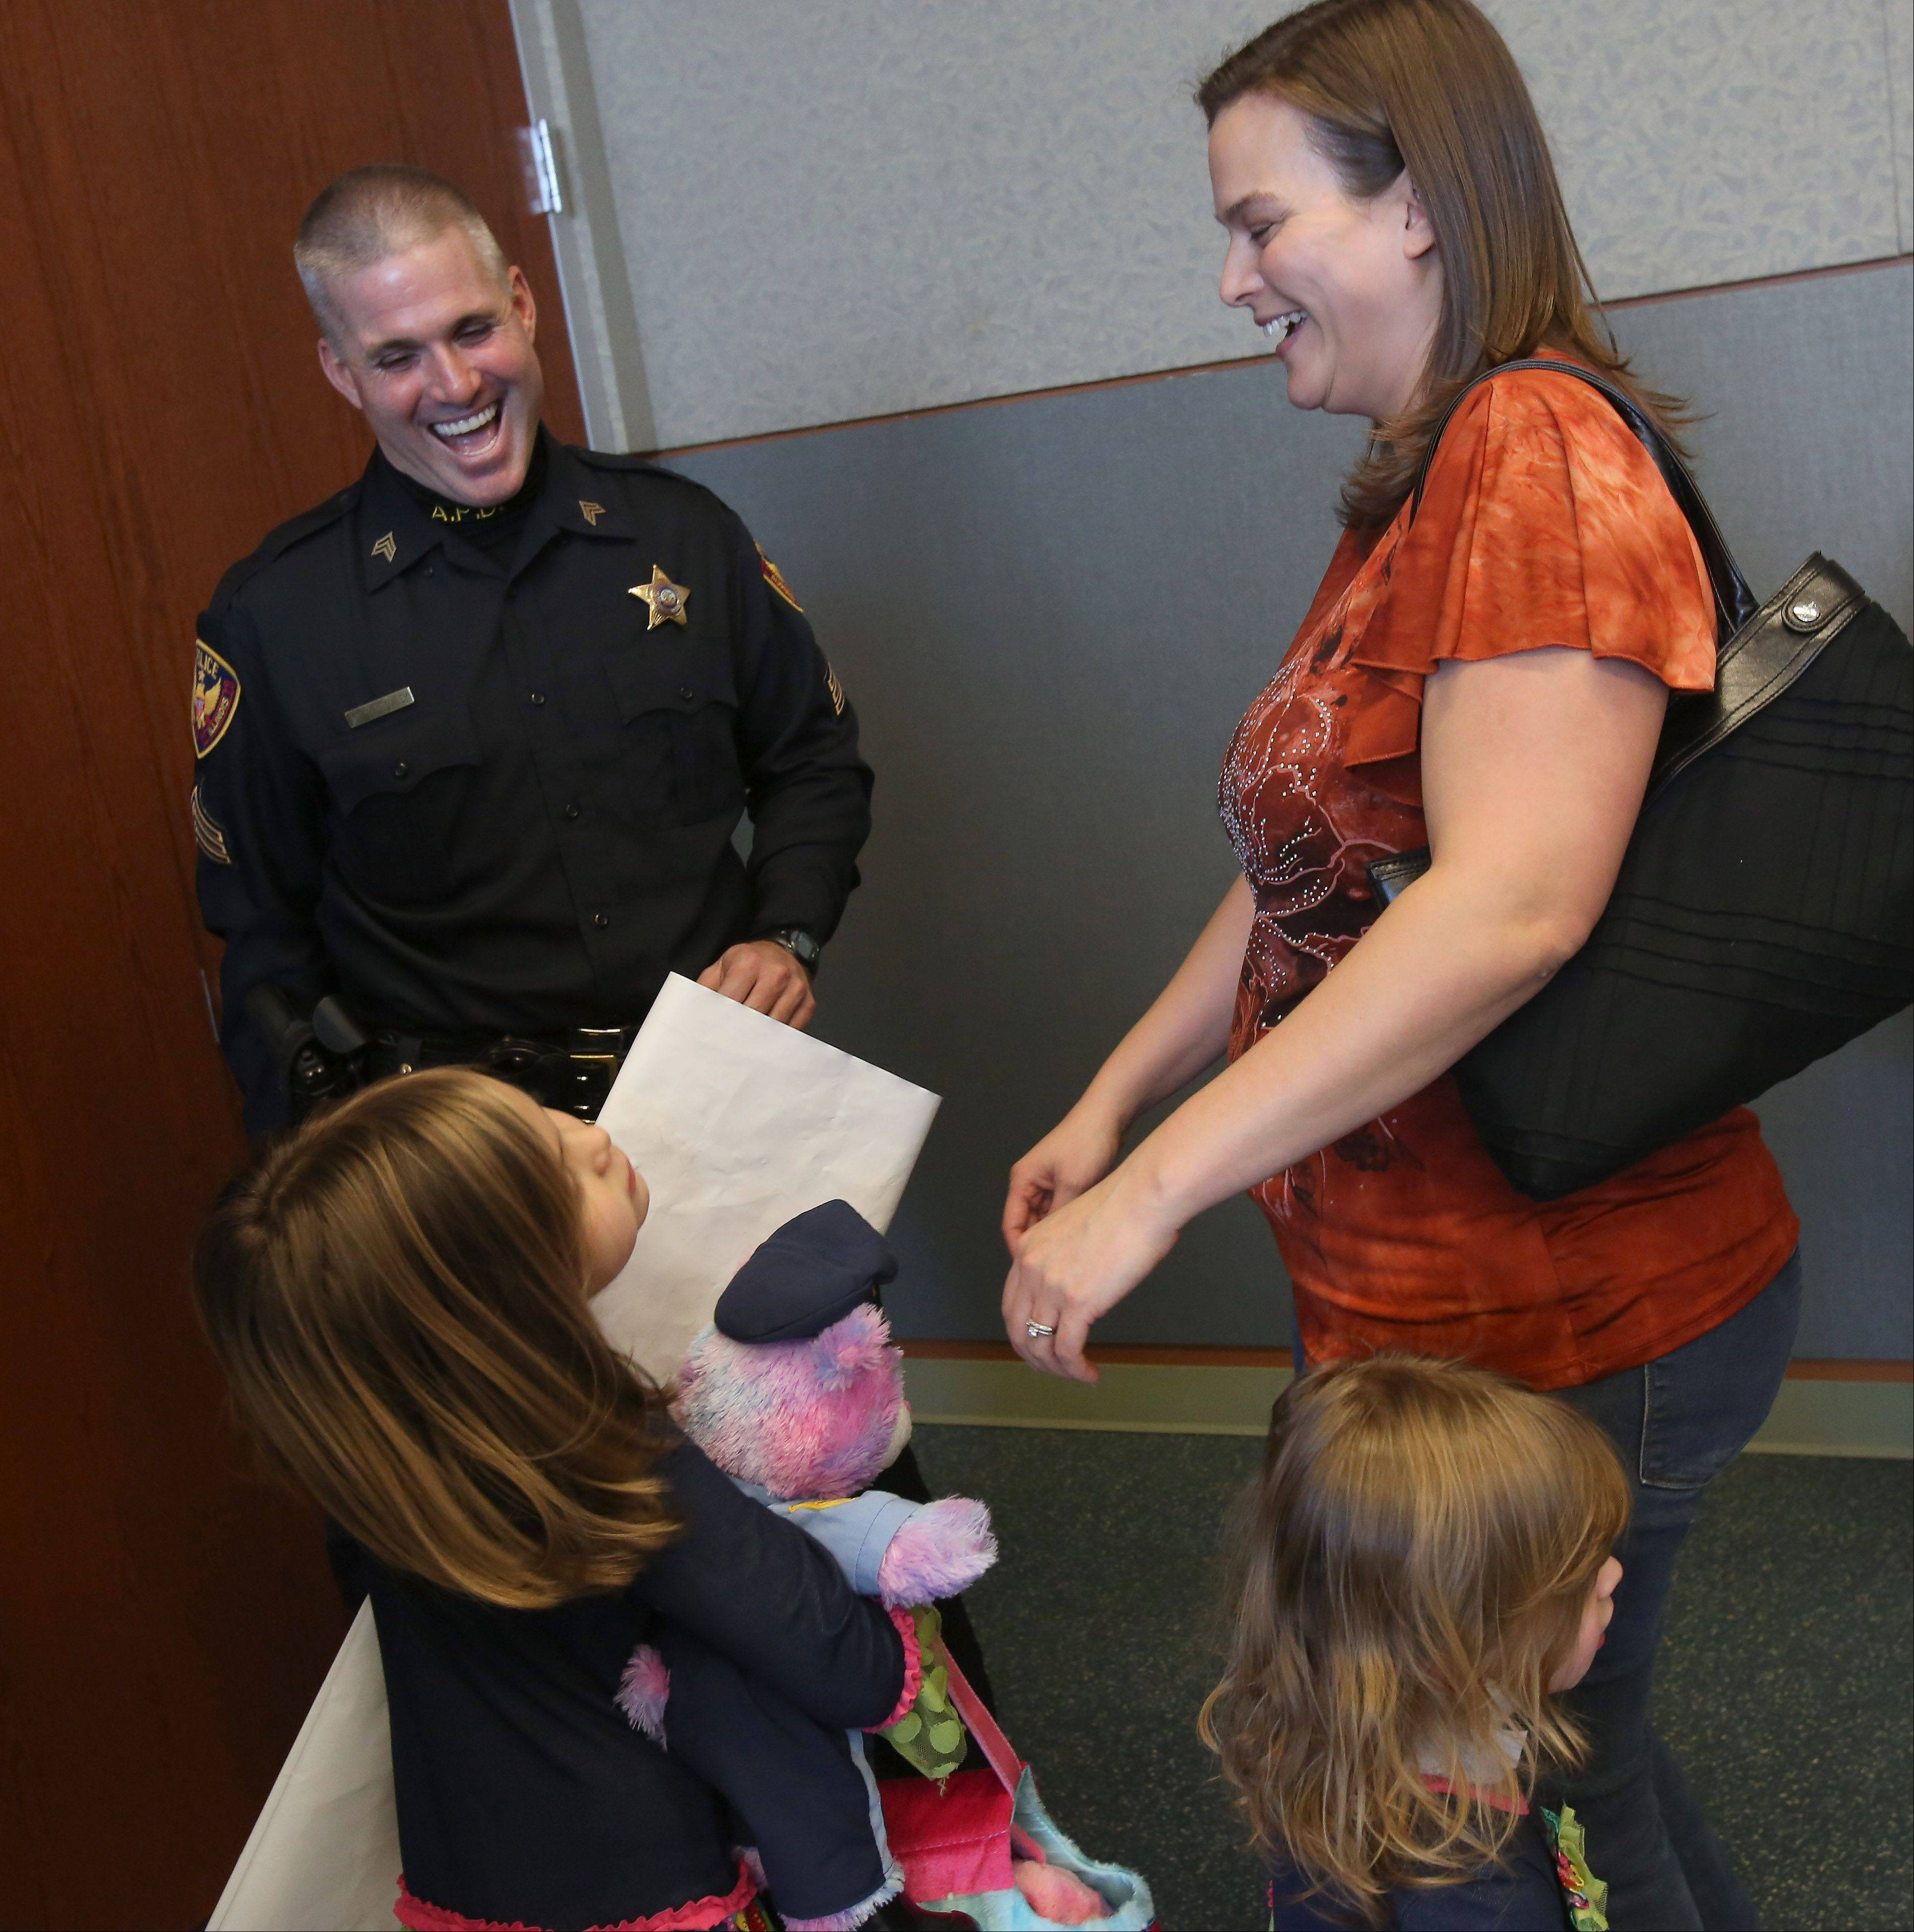 Sgt. Bill Rowley chats with Jessica Schmidt and daughters Abby, 2, and Emma, 5, at the Aurora Police Station.